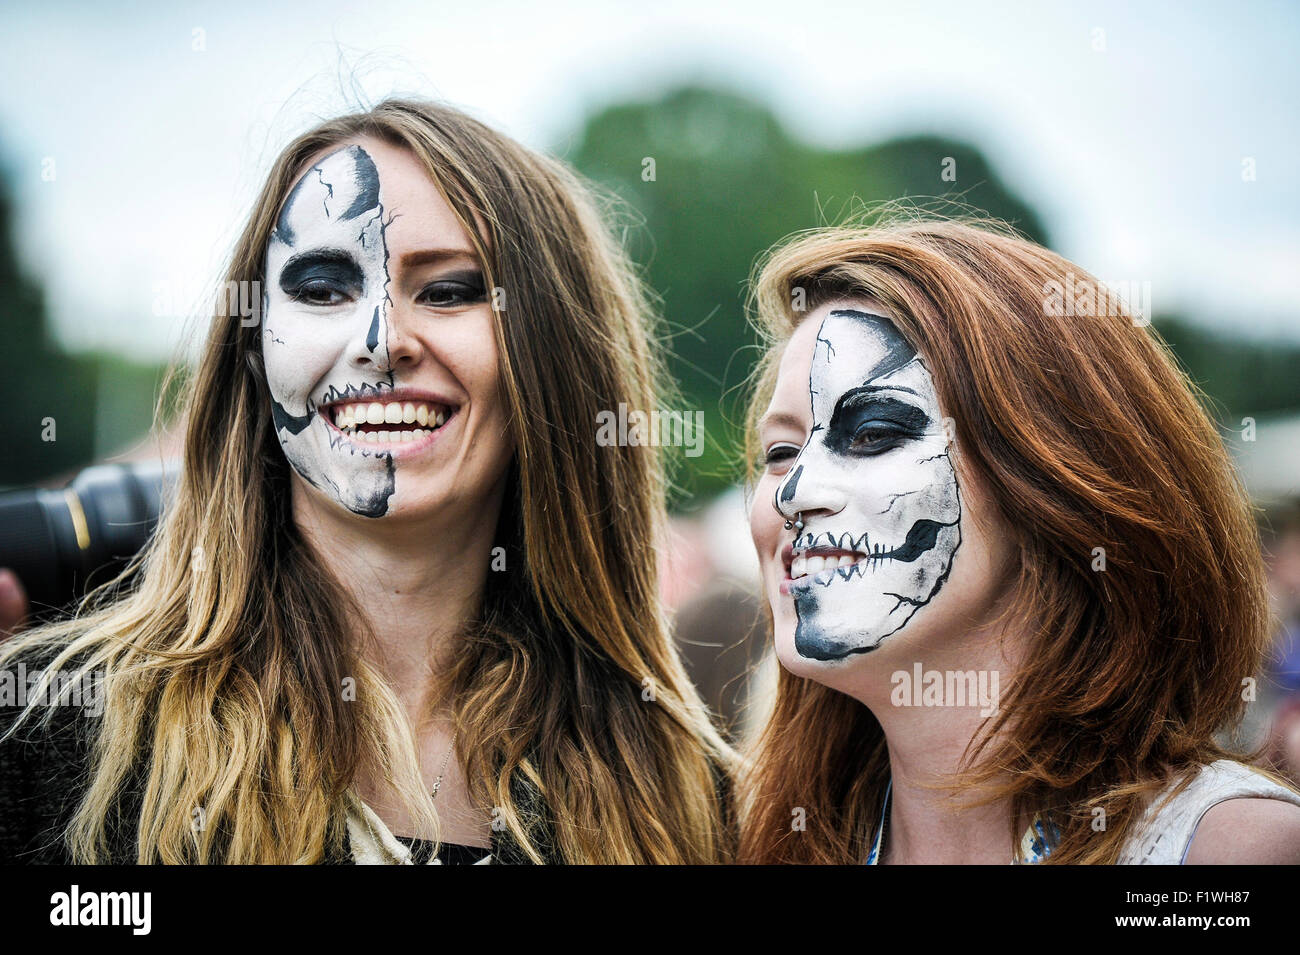 Two festivalgoers with painted faces at Together The People Festival in Brighton. - Stock Image